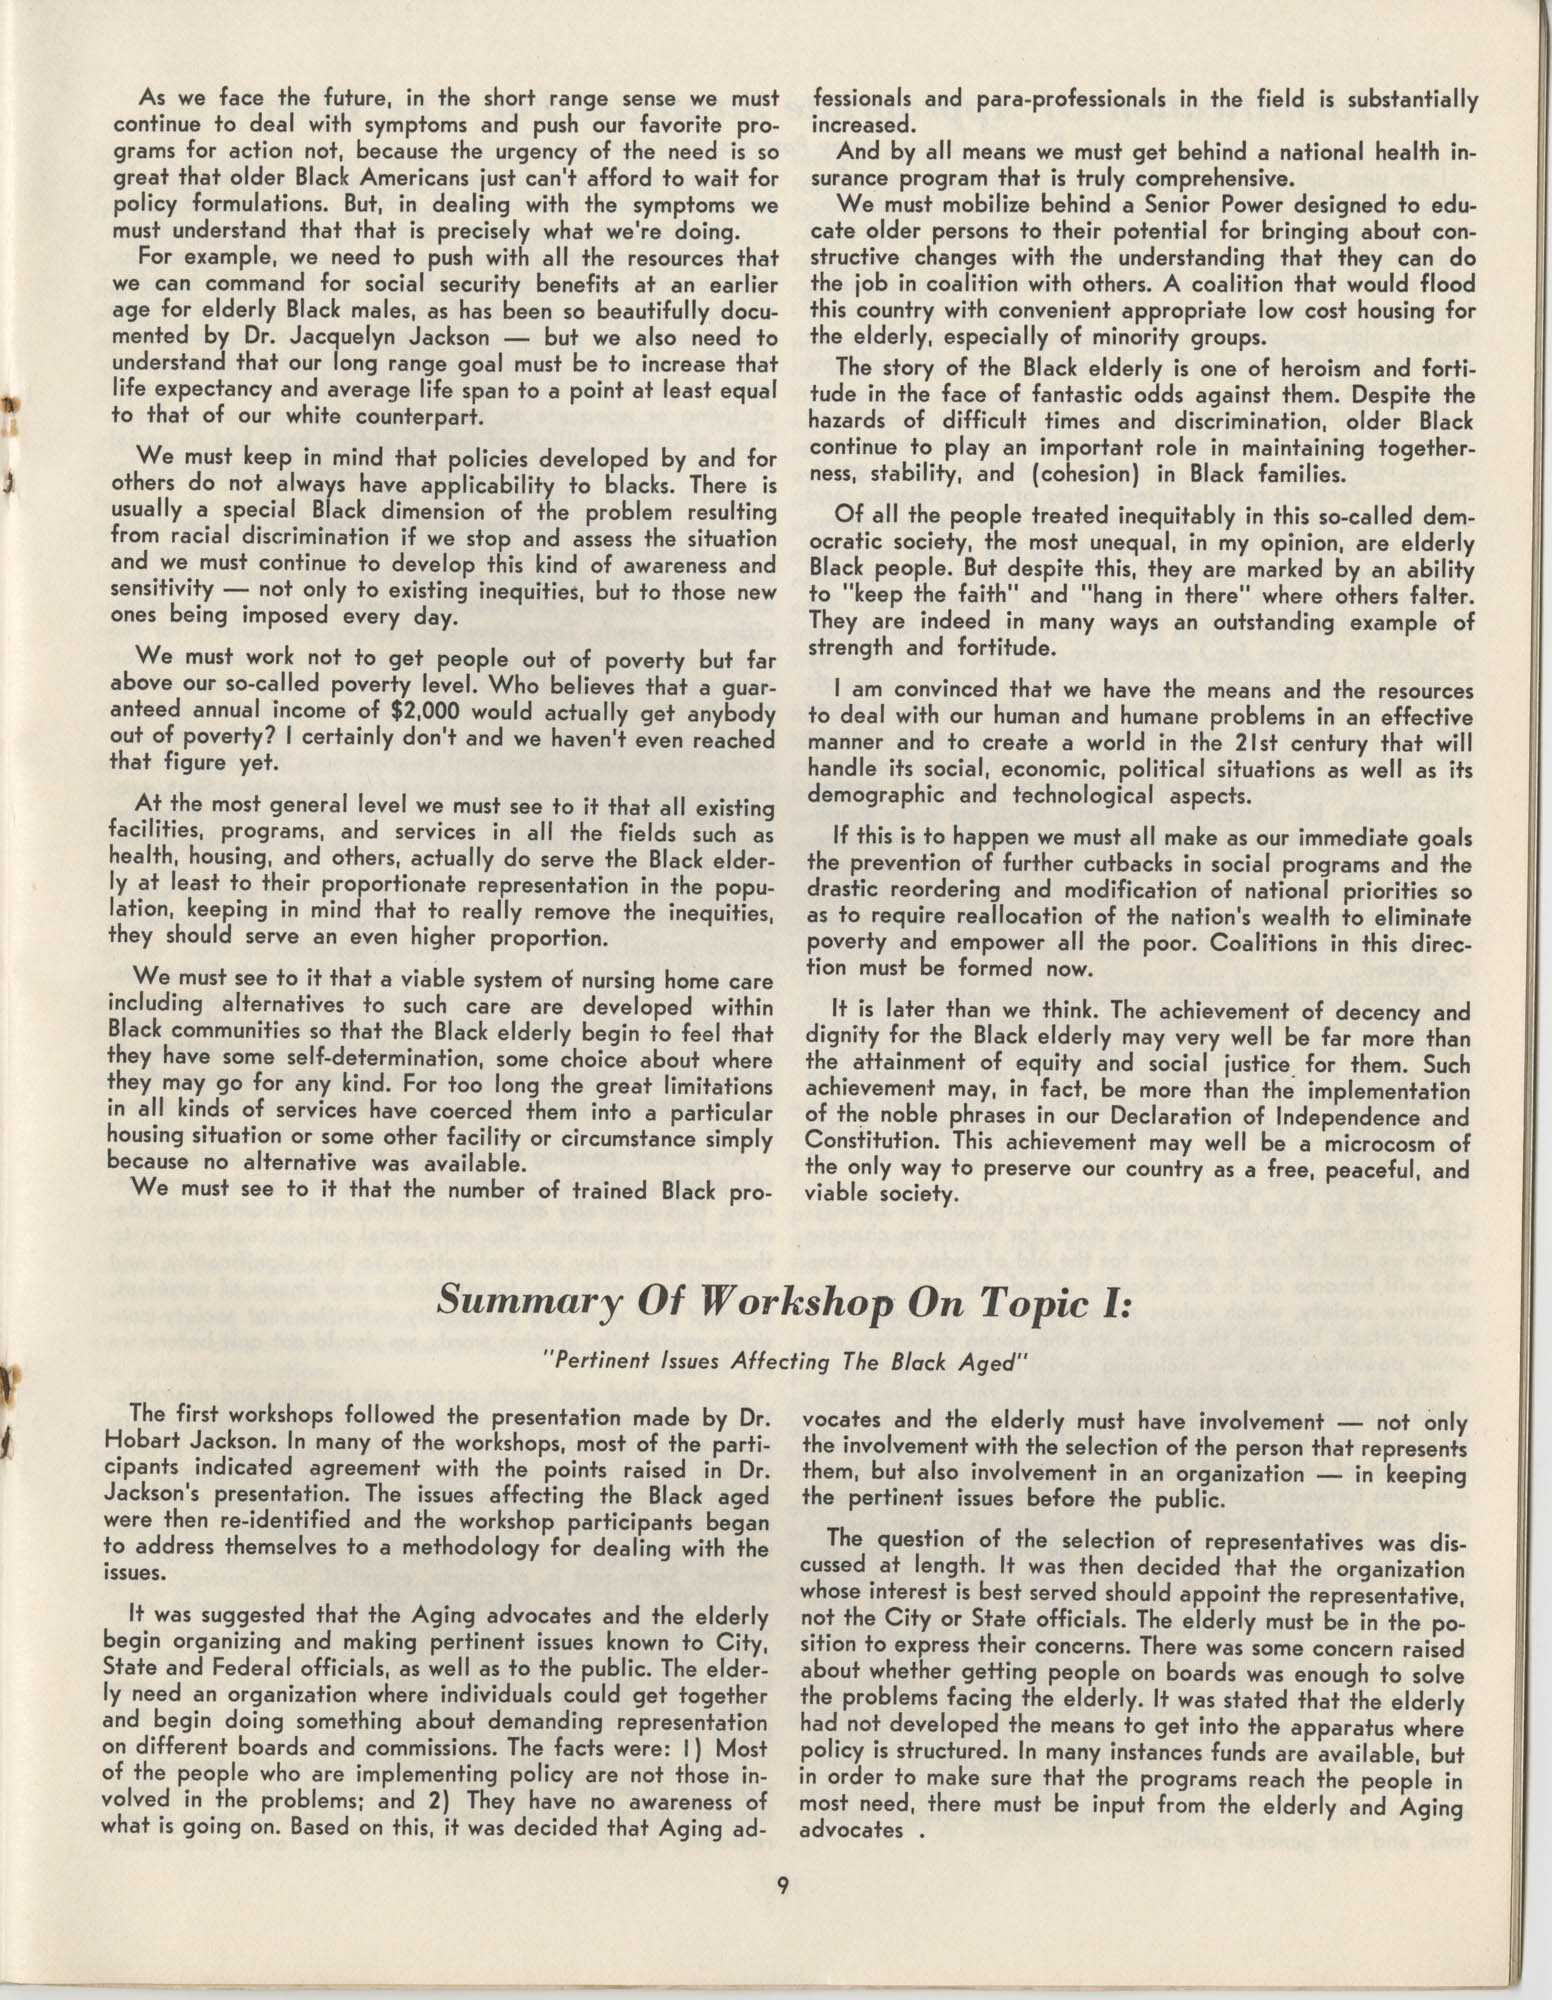 Black Educators Council for Human Services Conference on Aging, March 1975, Page 9